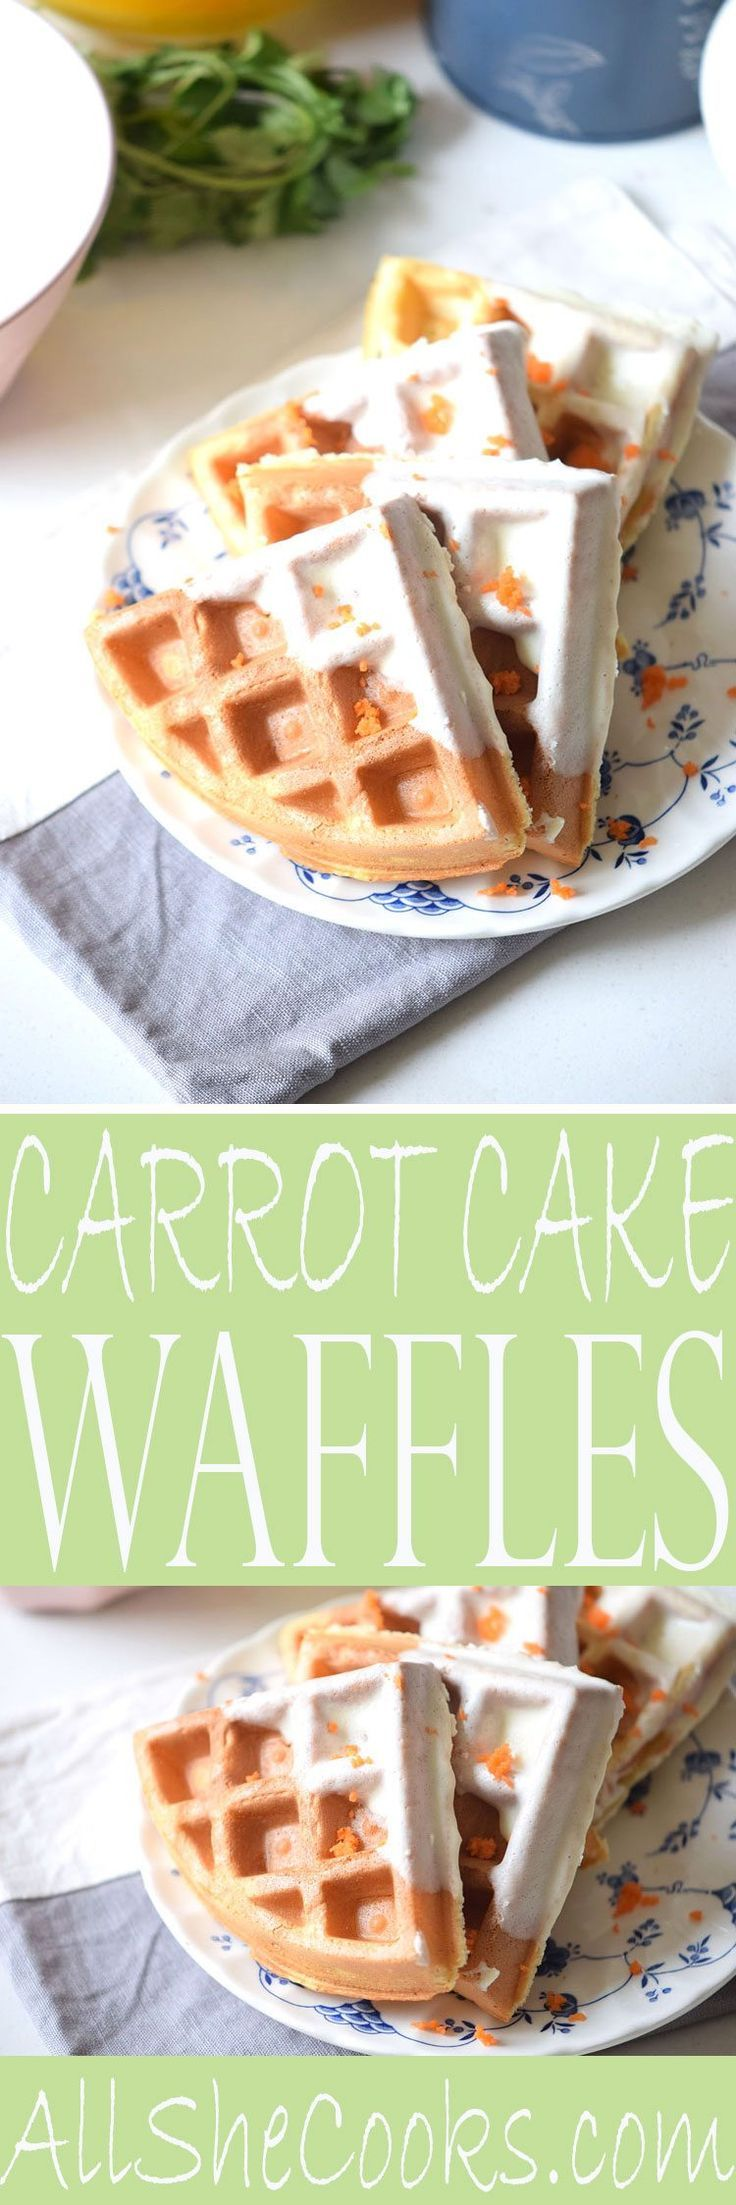 Carrot cake waffles try this easy waffle recipe for